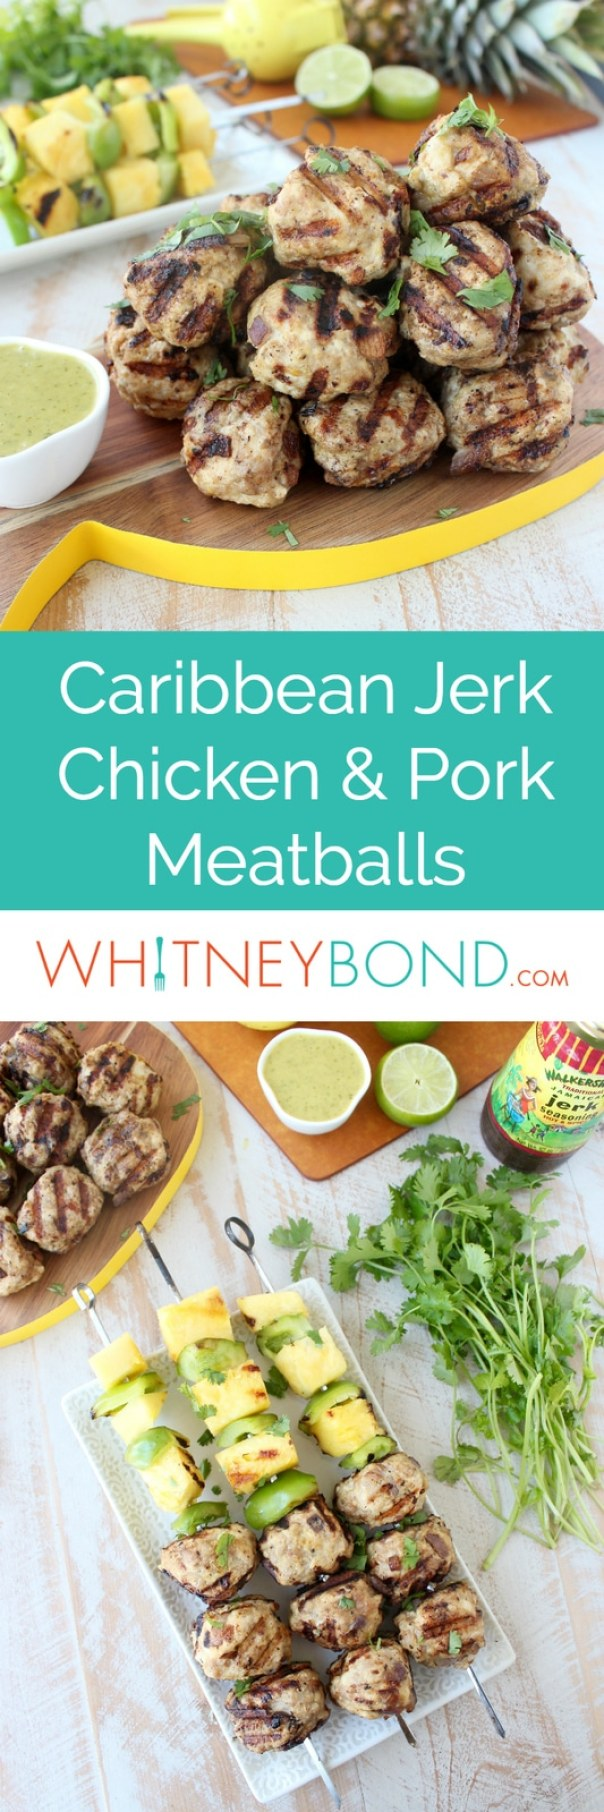 Caribbean Jerk Chicken and Pork Meatballs Recipe